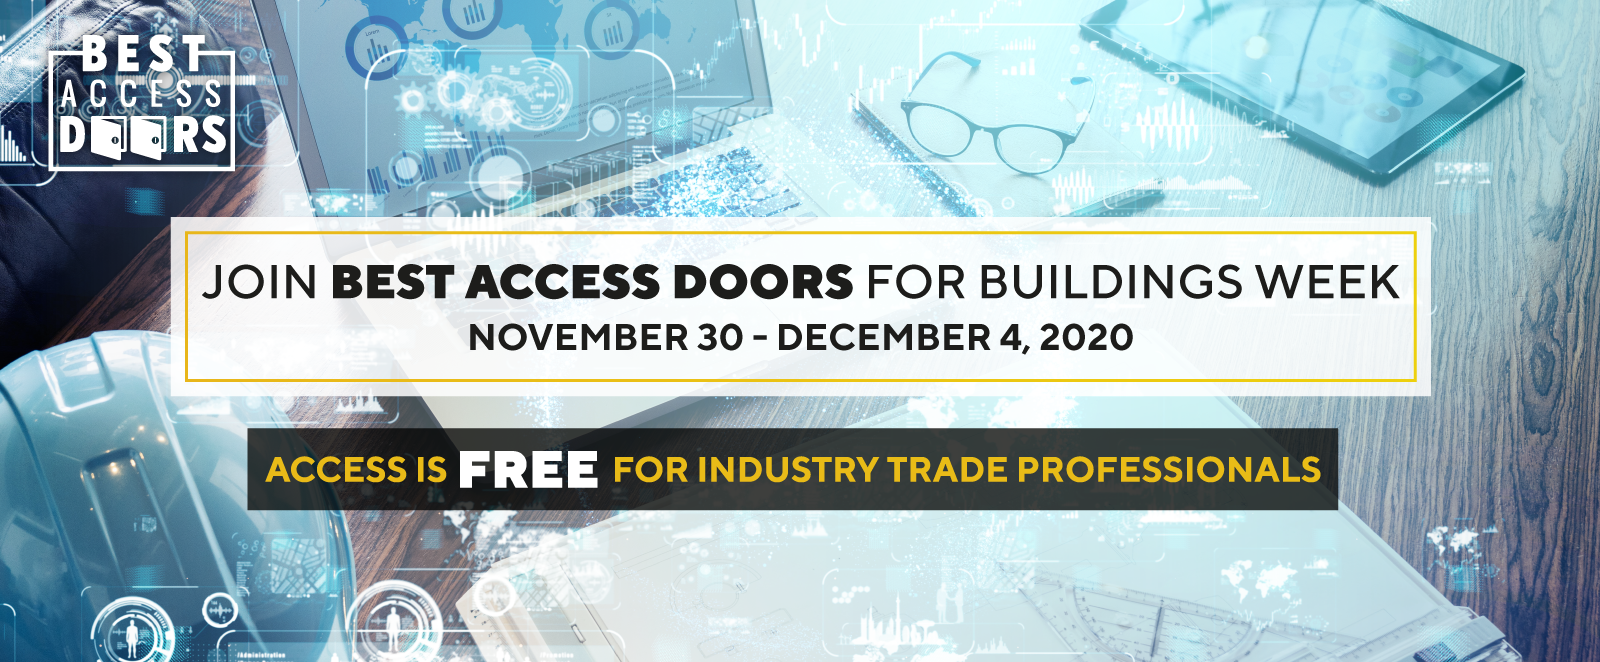 Join Best Access Doors for the virtual Buildings Week 2020 on November 30 - December 4 now! We offer free access to everyone!